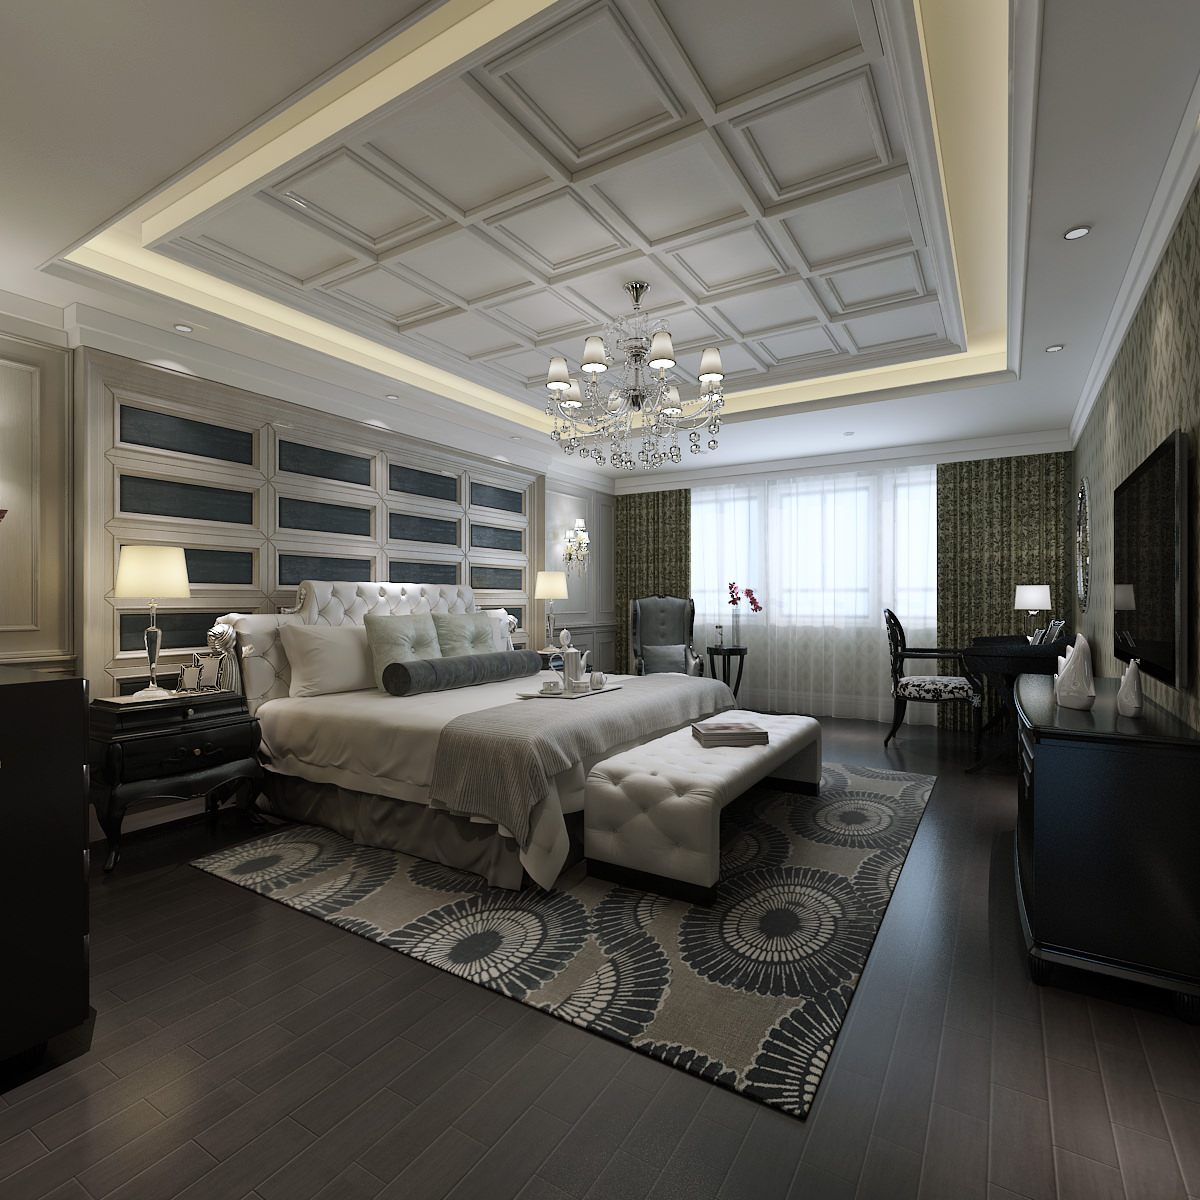 Luxurious bedroom with white bed 3d model max for Model bedroom interior design